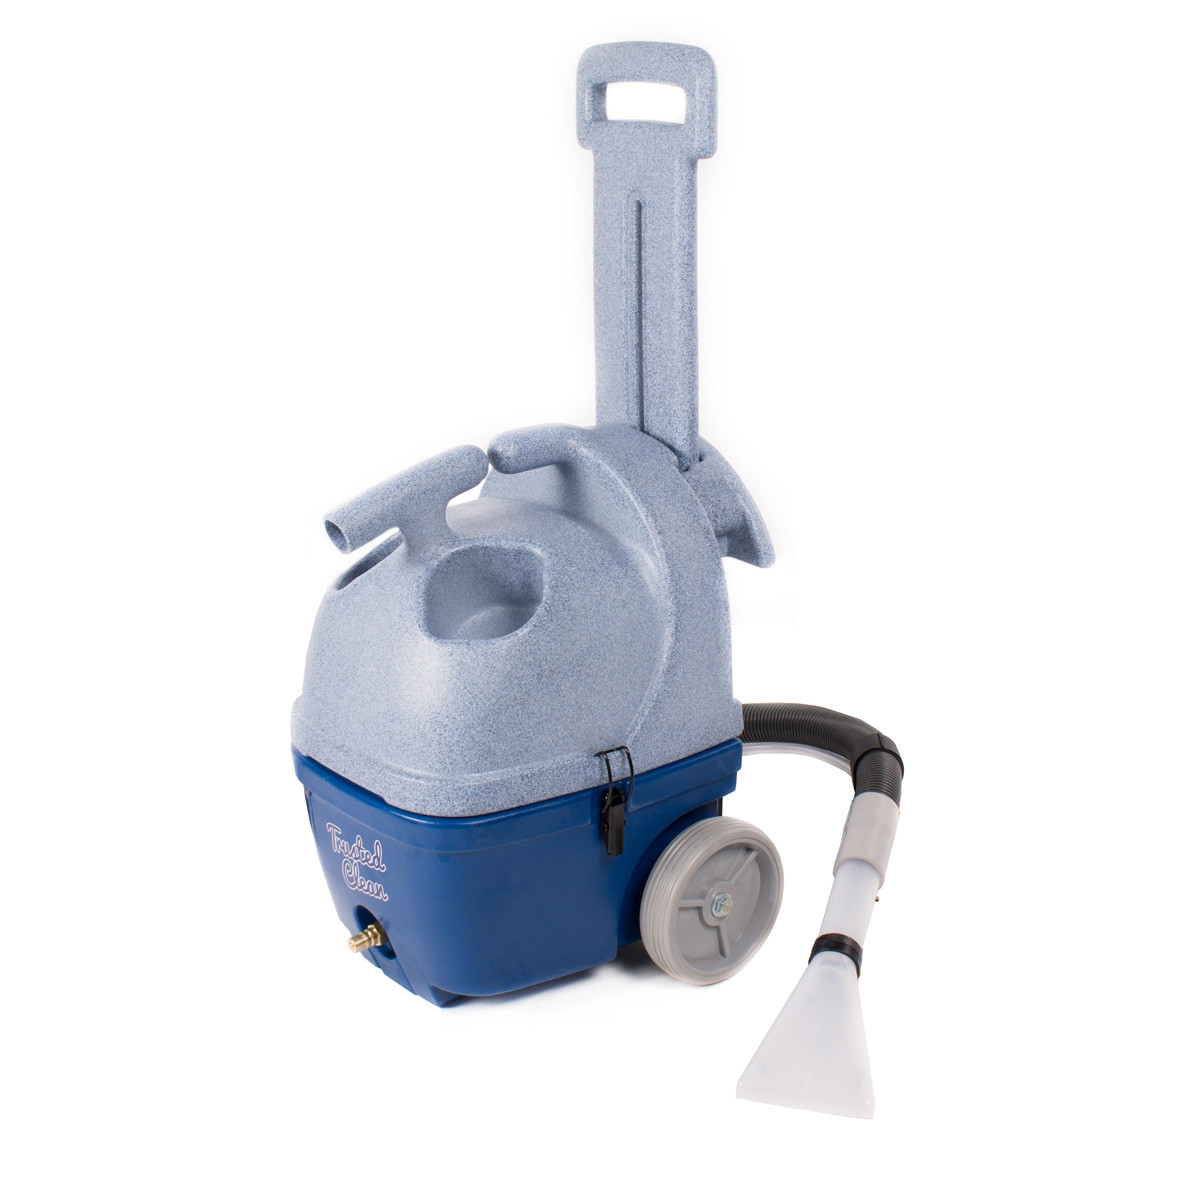 Trusted Clean 2 Gallon Carpet Spotter Stain Removing Machine Of Snapon Perfect For Small To Medium Cleaning Jobs The Snap